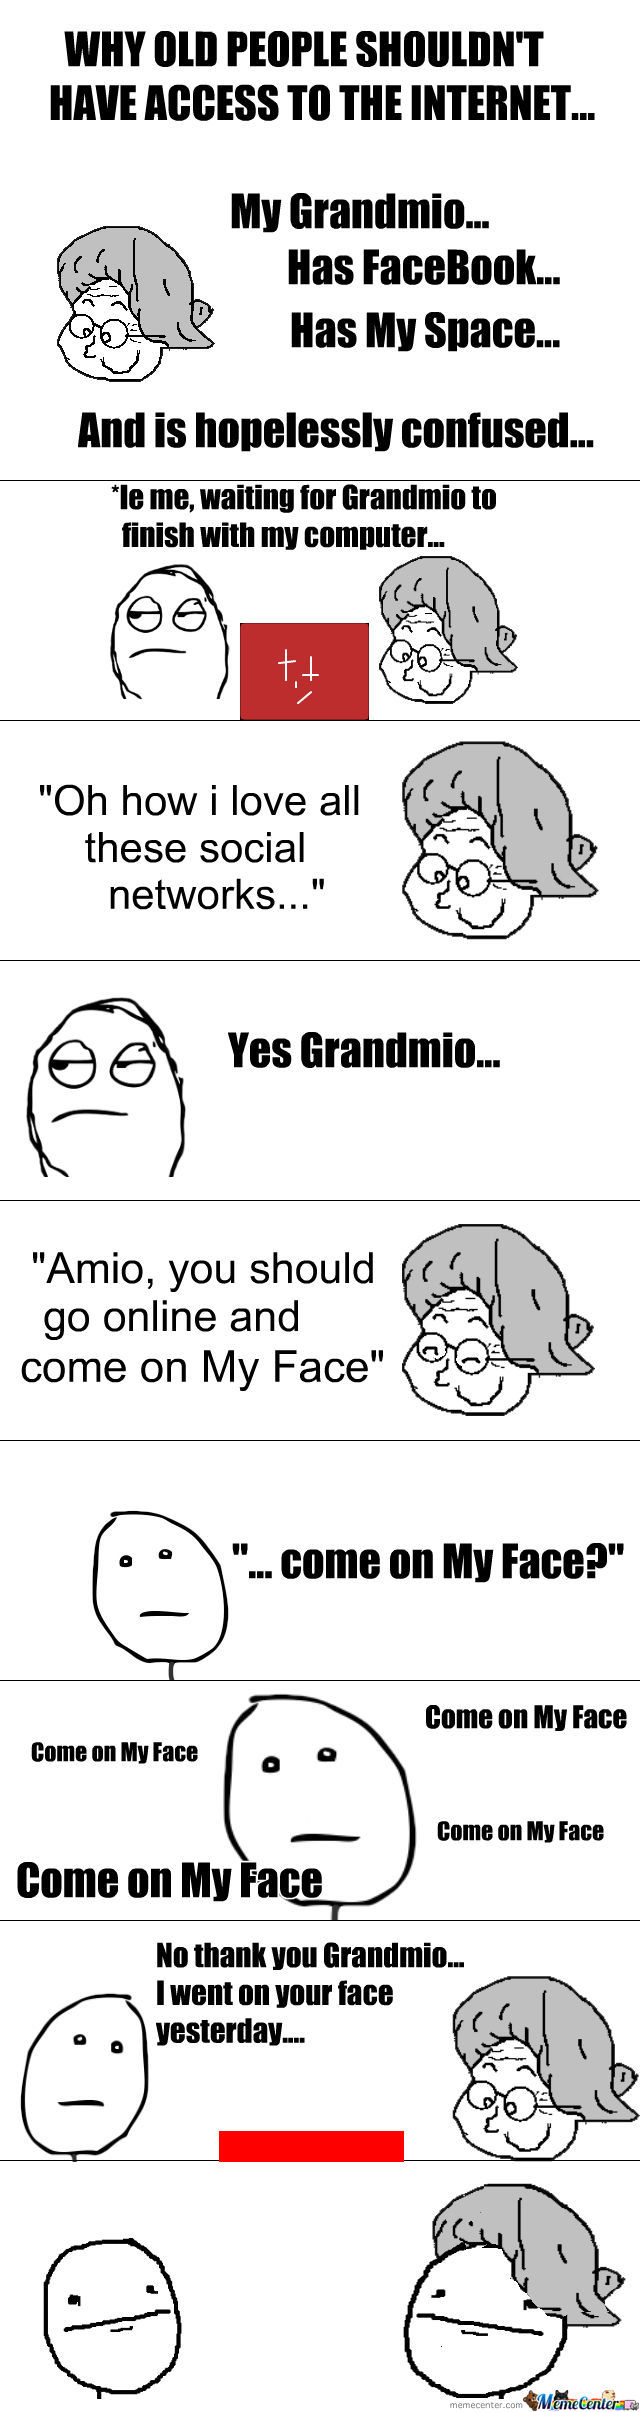 My Grandmio... (That's Amio Talk For Grandmother Btw)